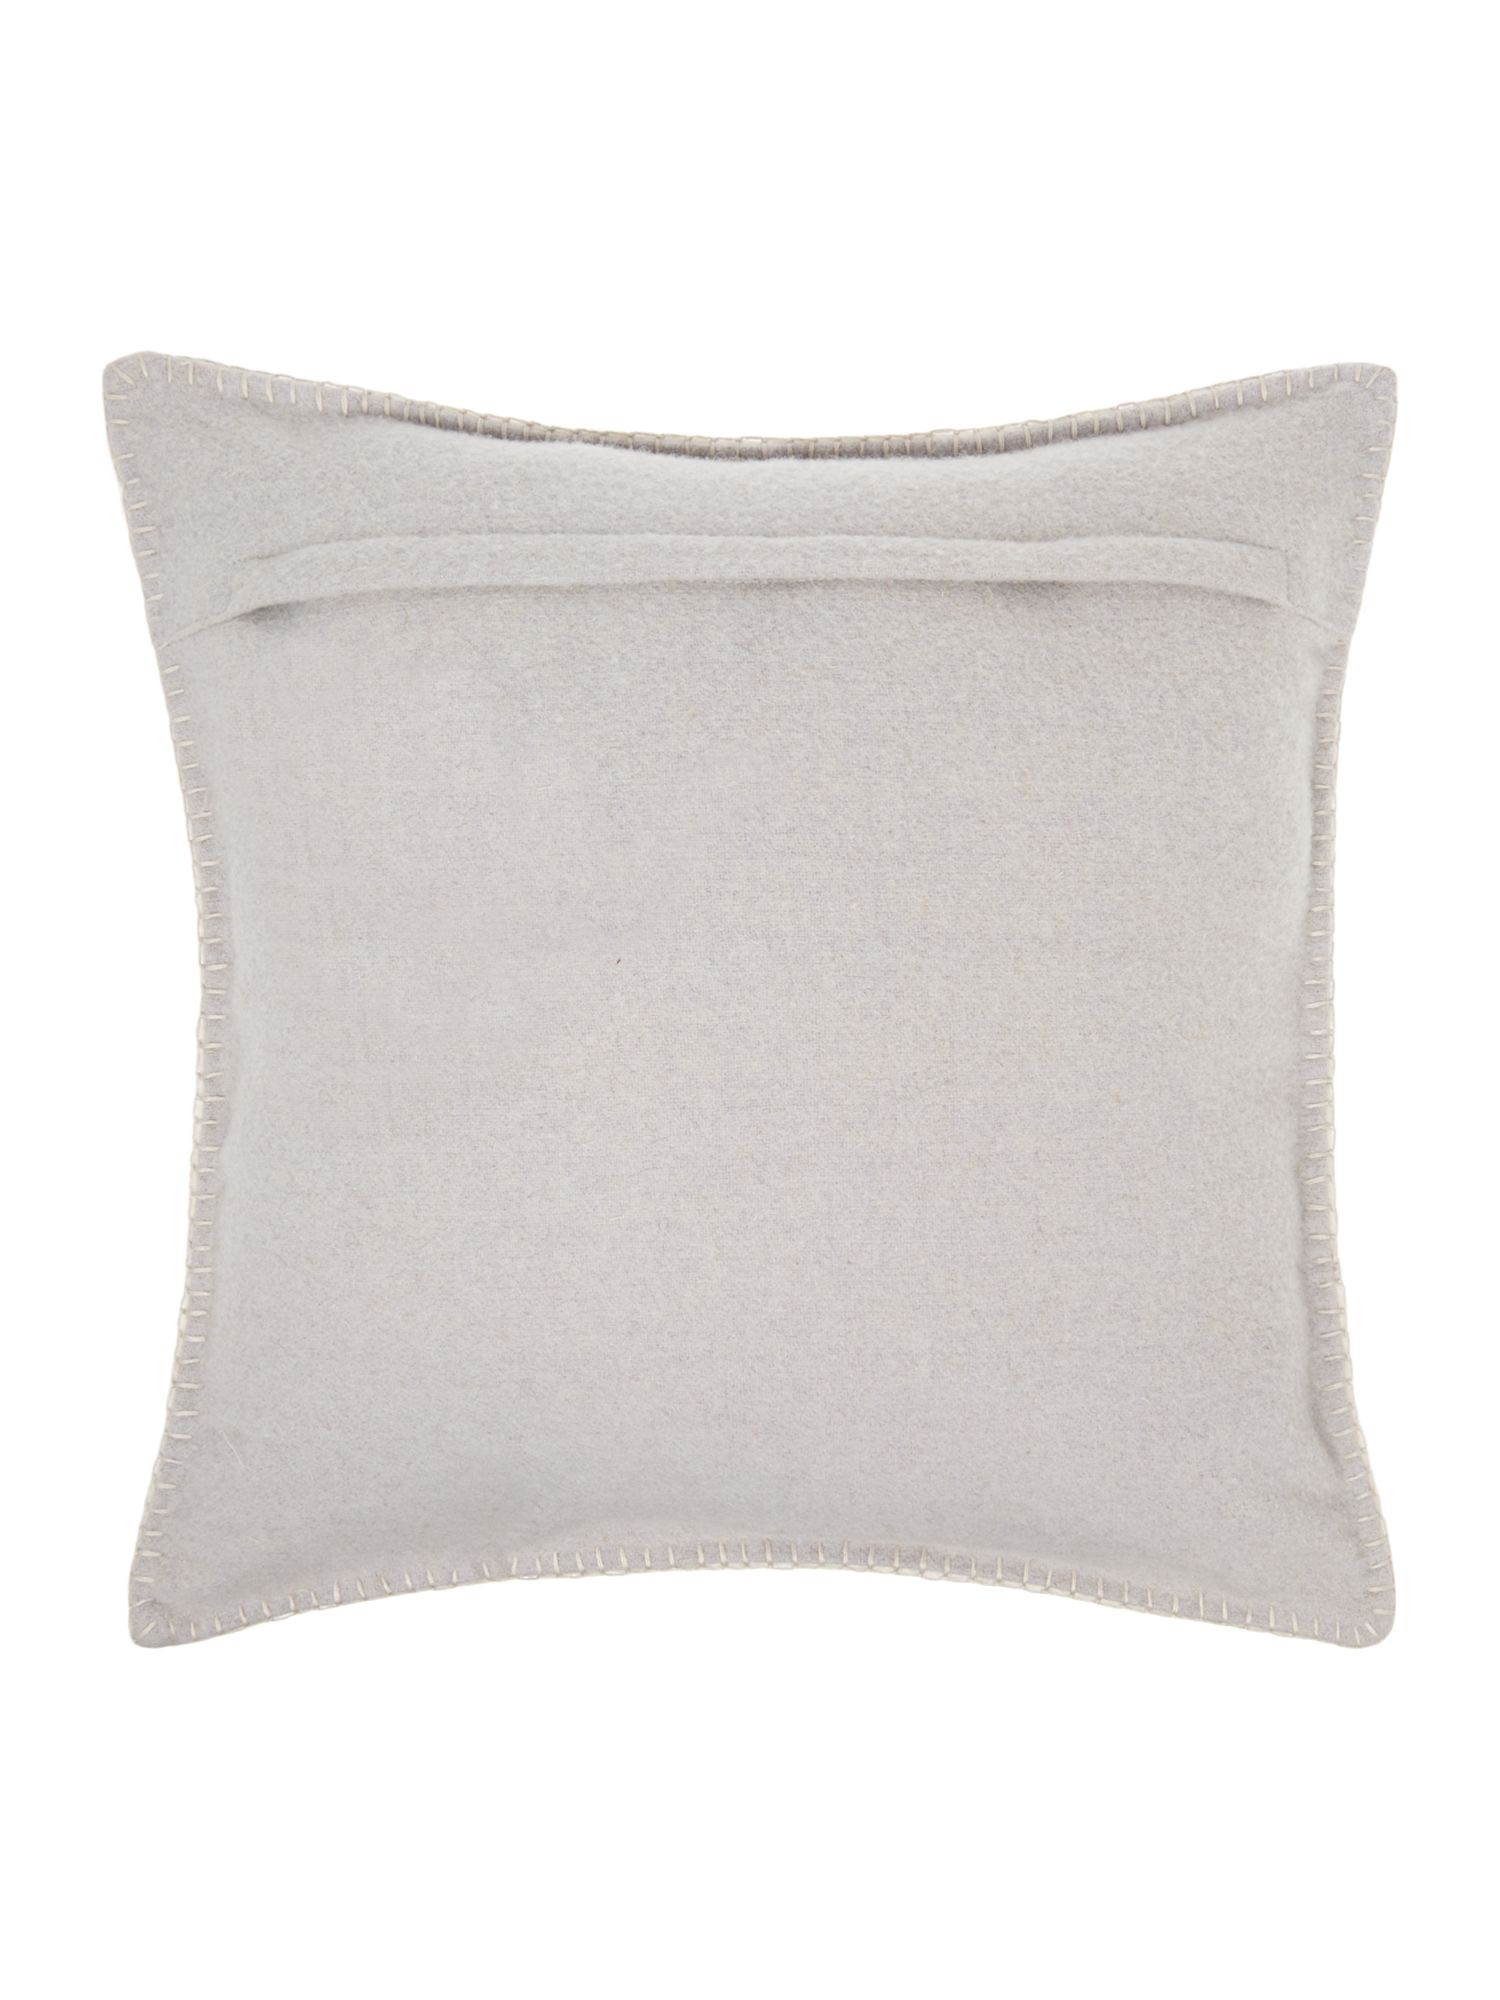 Heart embroidered felt cushion, cream